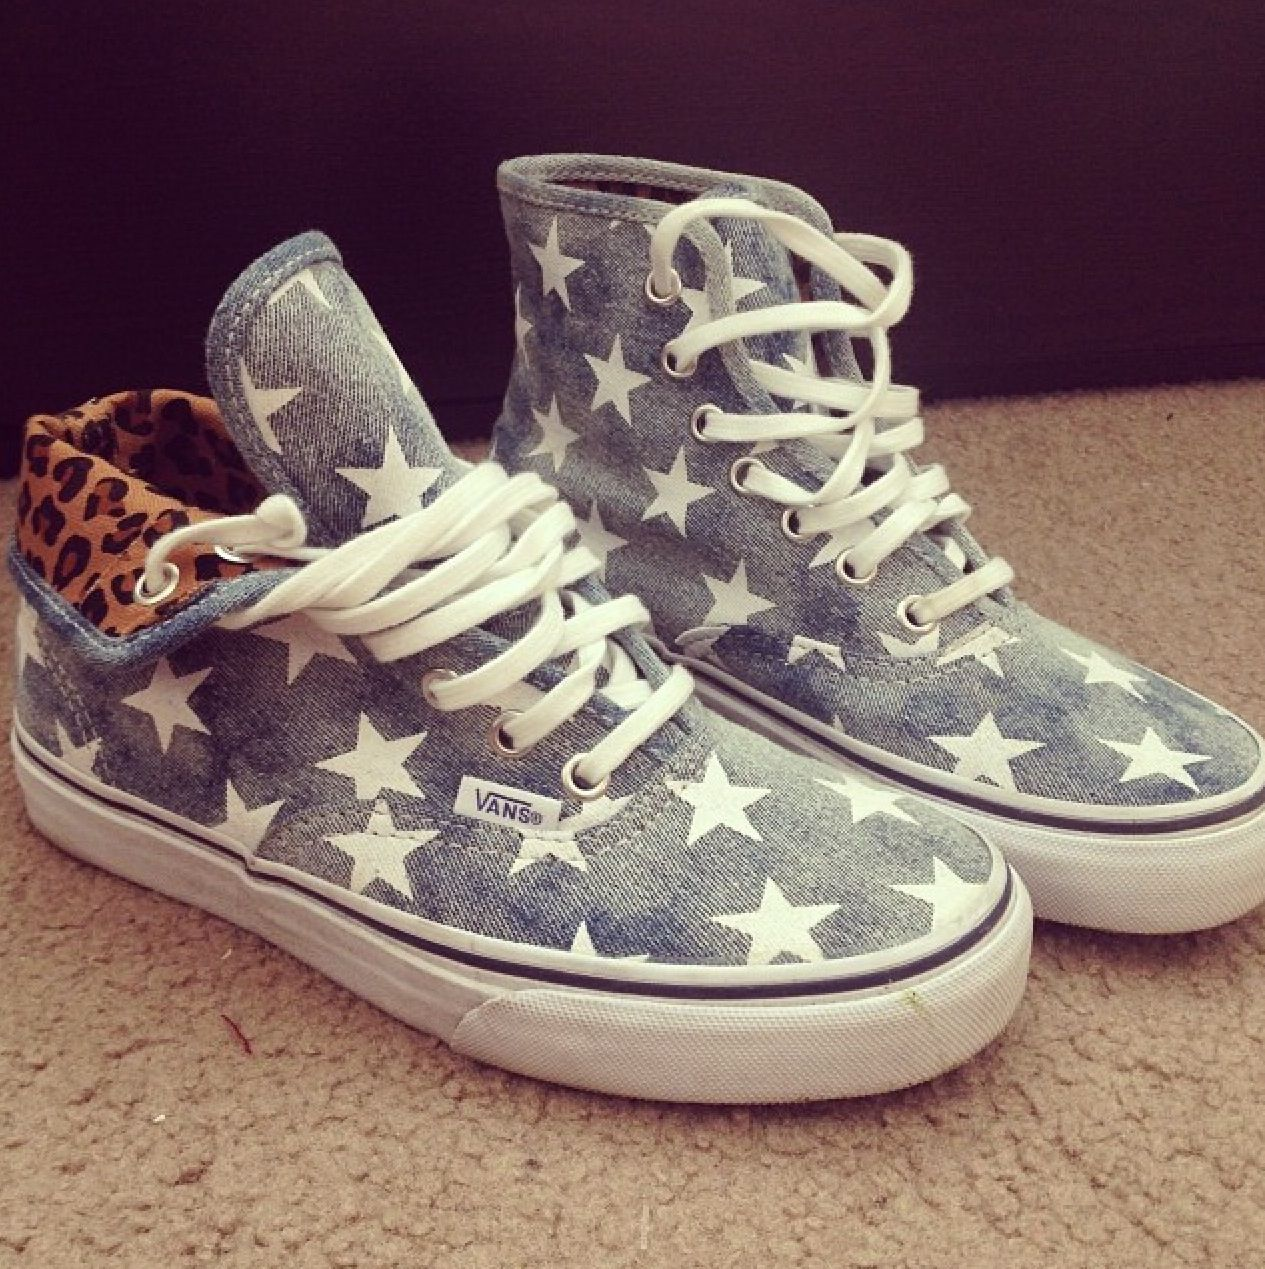 High Top Sneakers (Celebrity Style) | POPSUGAR Fashion